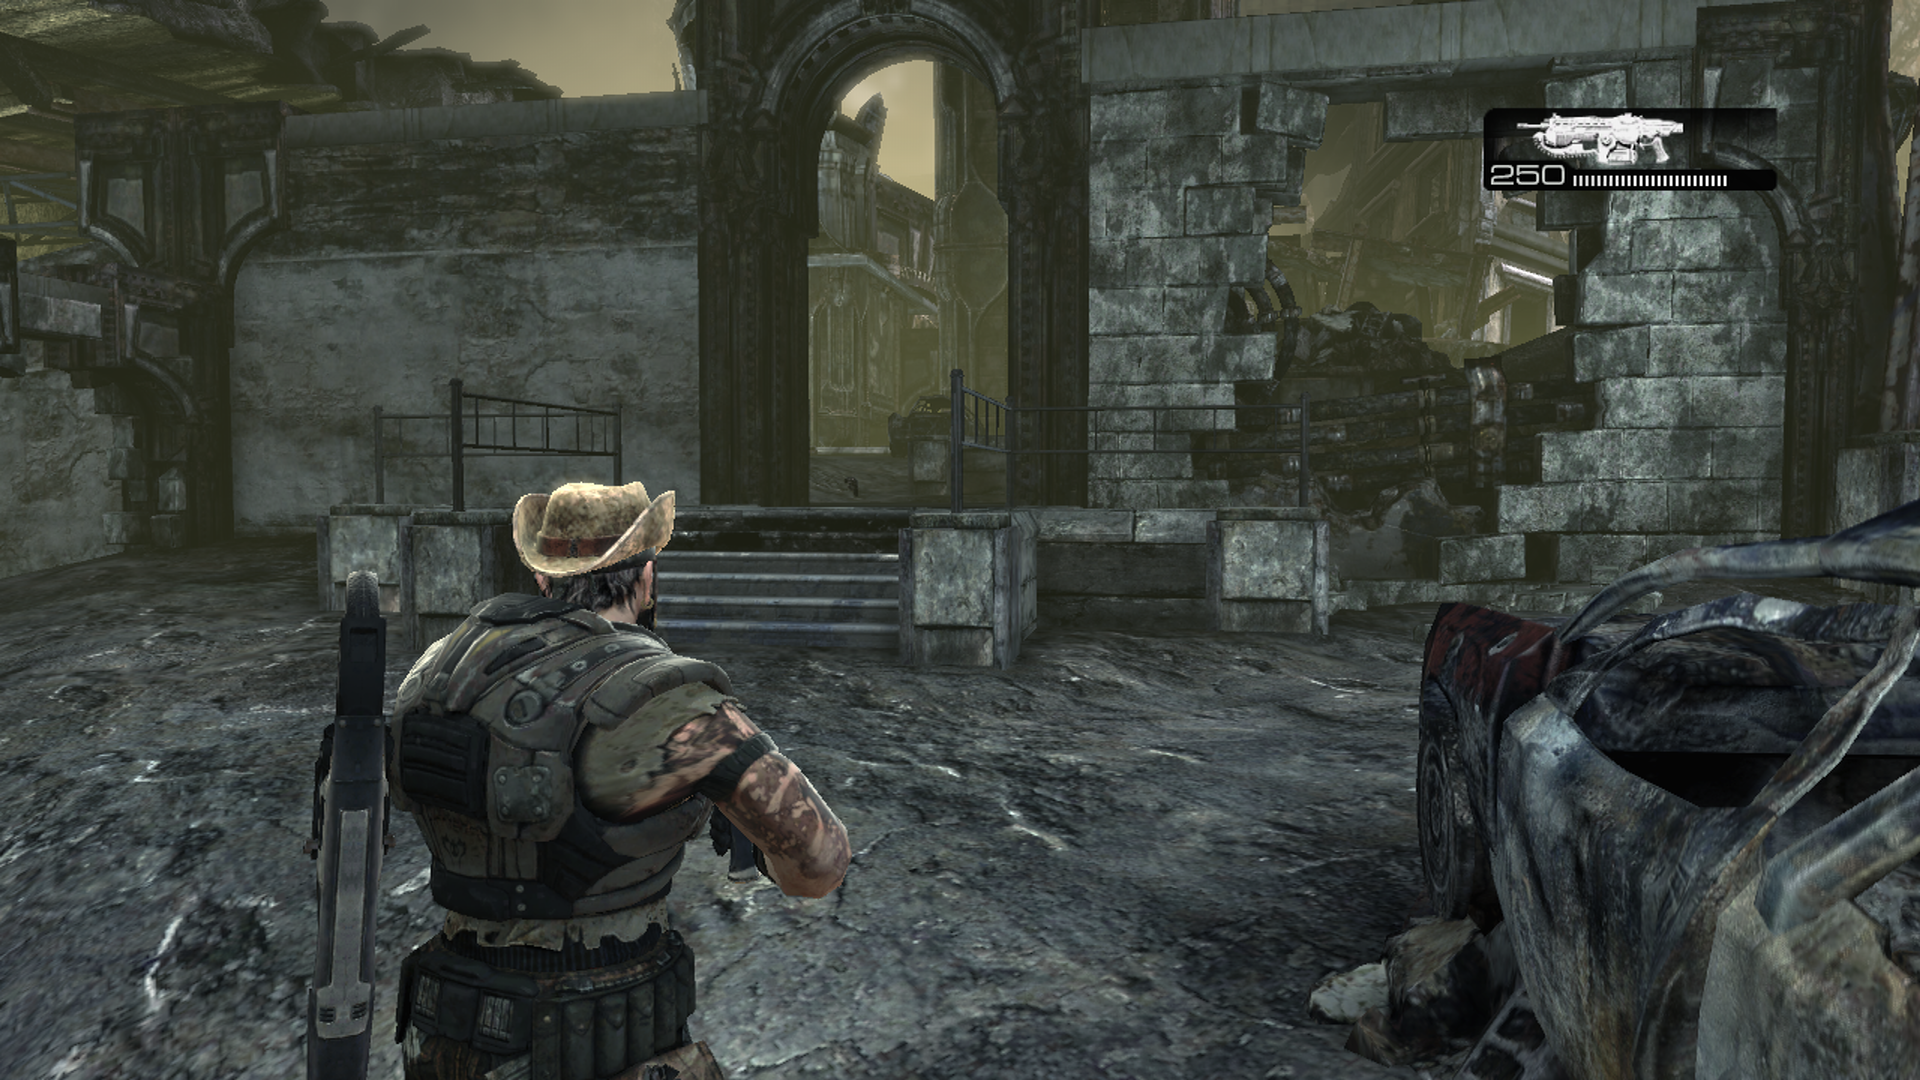 Gears of War 2: Combustible Multiplayer Map Pack Screenshots ... on halo 3: odst, tekken 2 maps, left 4 dead, left 4 dead 2, call of duty waw maps, unreal 2 maps, company of heroes 2 maps, guild wars 2 maps, dead space, god of war, call of duty: advanced warfare maps, halo: combat evolved, unreal engine, mortal kombat 2 maps, red dead redemption, the elder scrolls v: skyrim, gears of war 1 maps, call of duty: modern warfare 3, metal gear 2 maps, advance wars 2 maps, dark souls 2 maps, dying light 2 maps, goat simulator maps, dante's inferno maps, the crew maps, gears of war 4 maps, call of duty: world at war, marcus fenix, halo: reach, epic games, call of duty mw2 maps, call of duty: modern warfare 2, gears of war 3, call of duty 2 maps, the last of us maps, mass effect 2, star wars battlefront 2 maps,